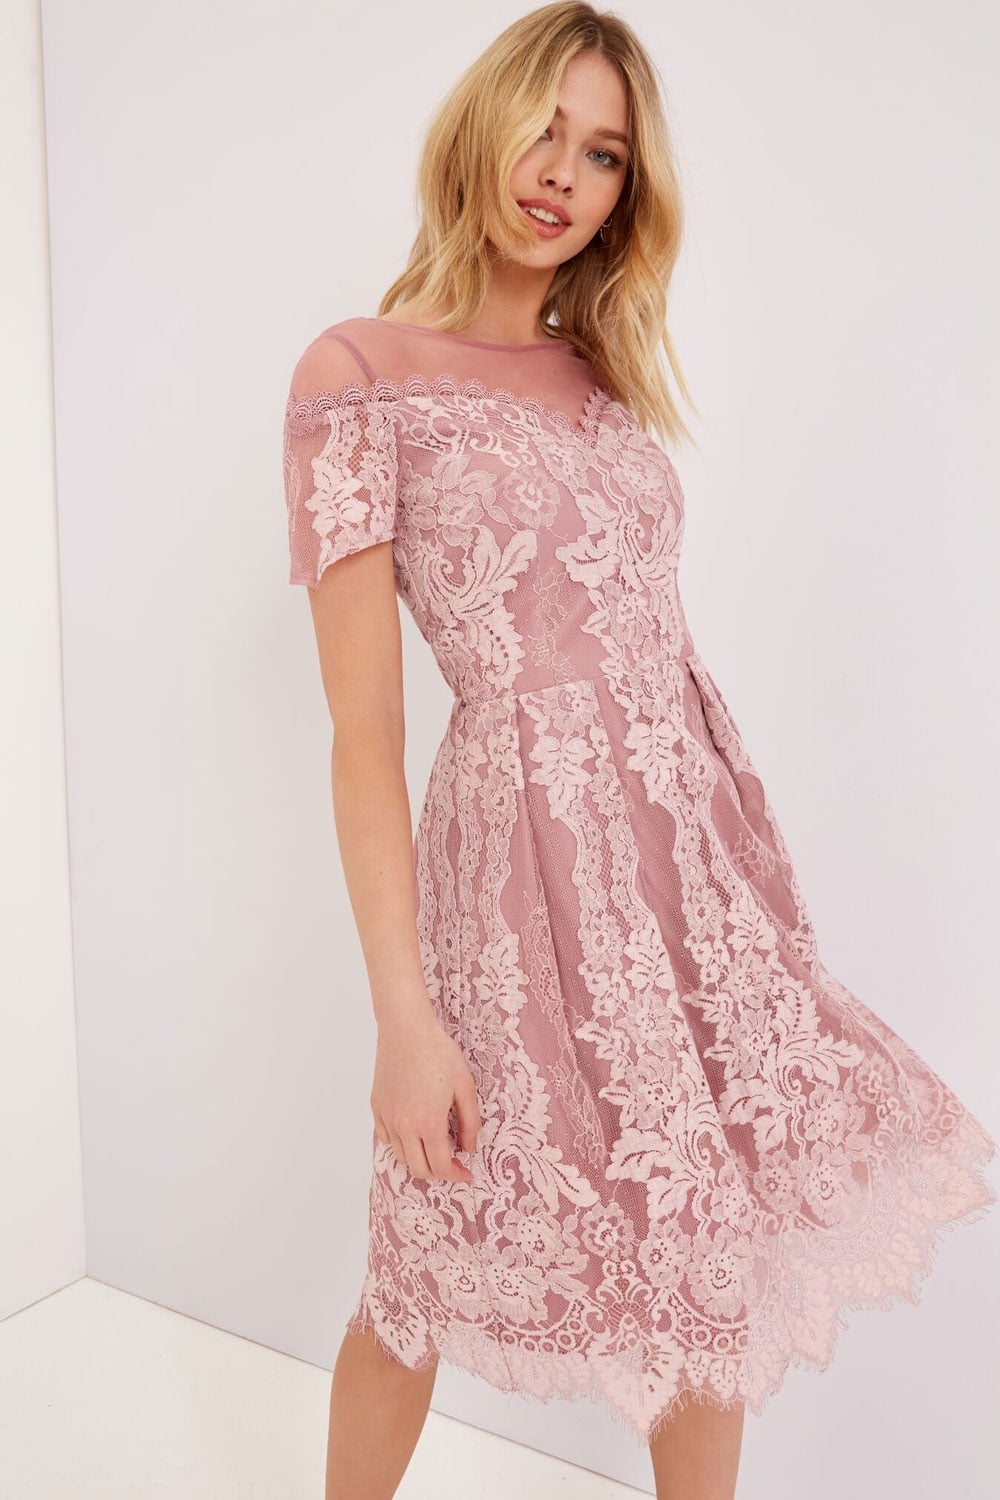 Dusty pink lace dress from little mistress uk Pink fashion and style pink dress